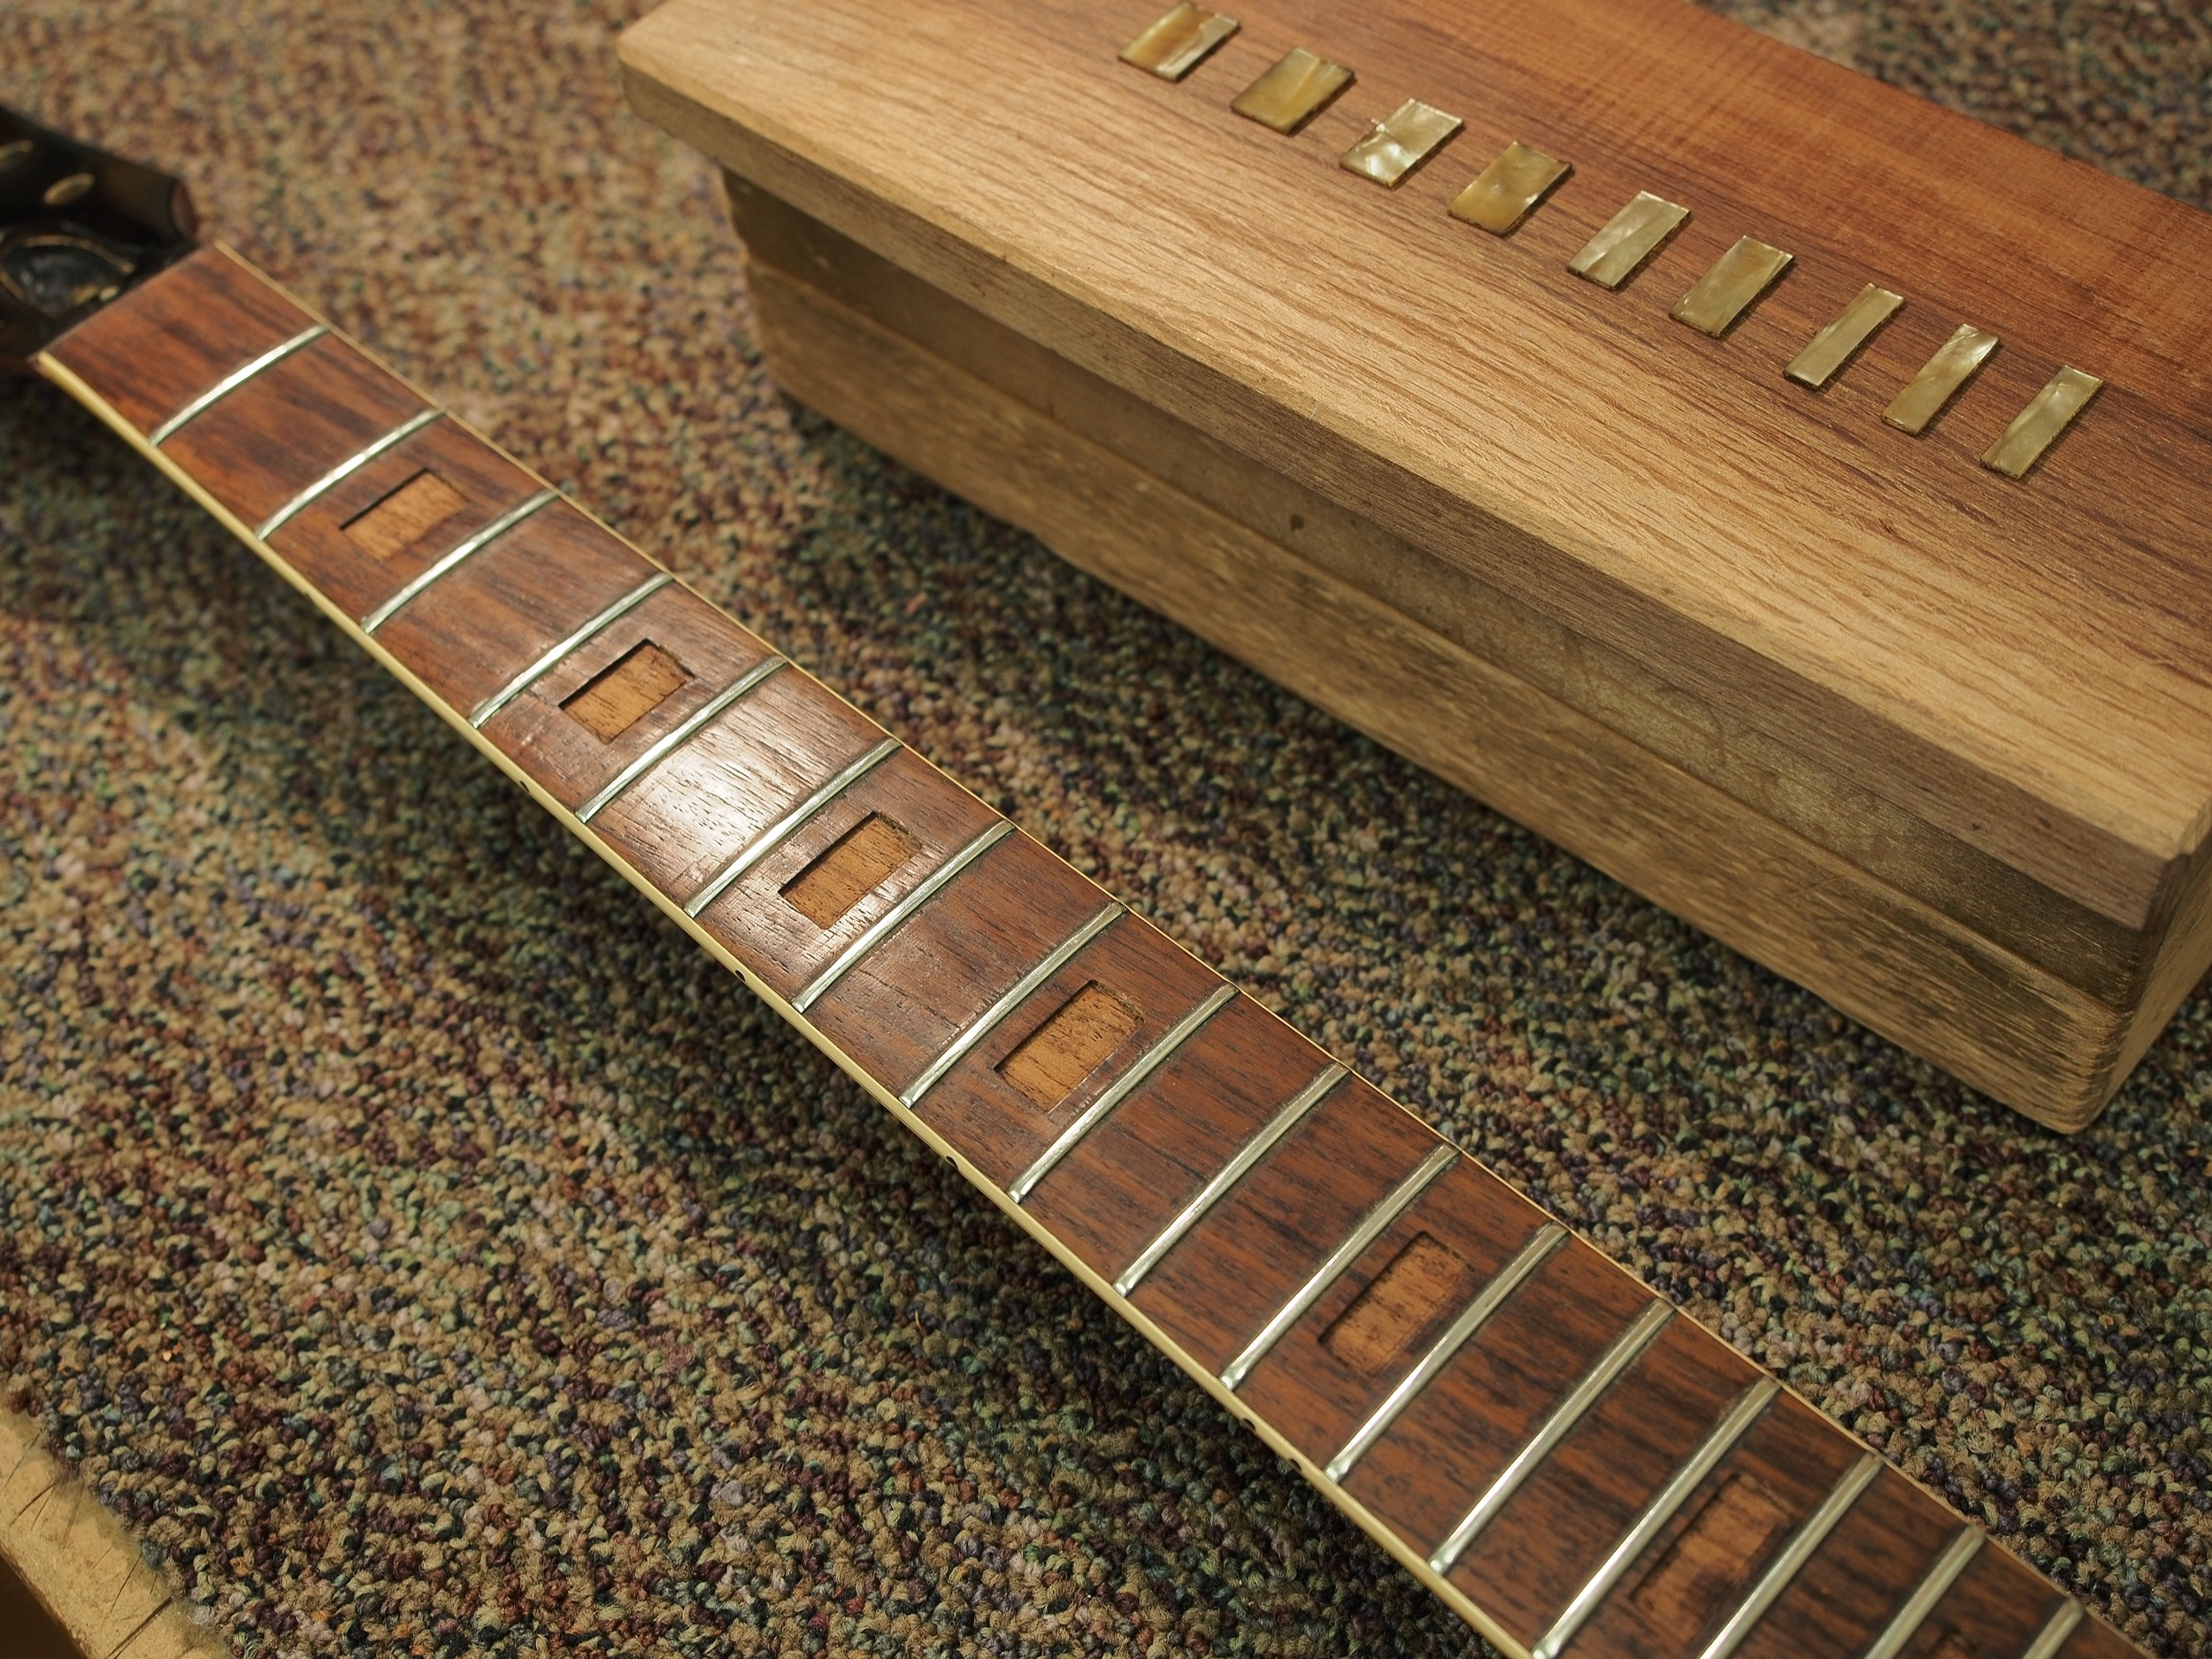 The neck removed, and the block inlays removed, and set aside for later use.